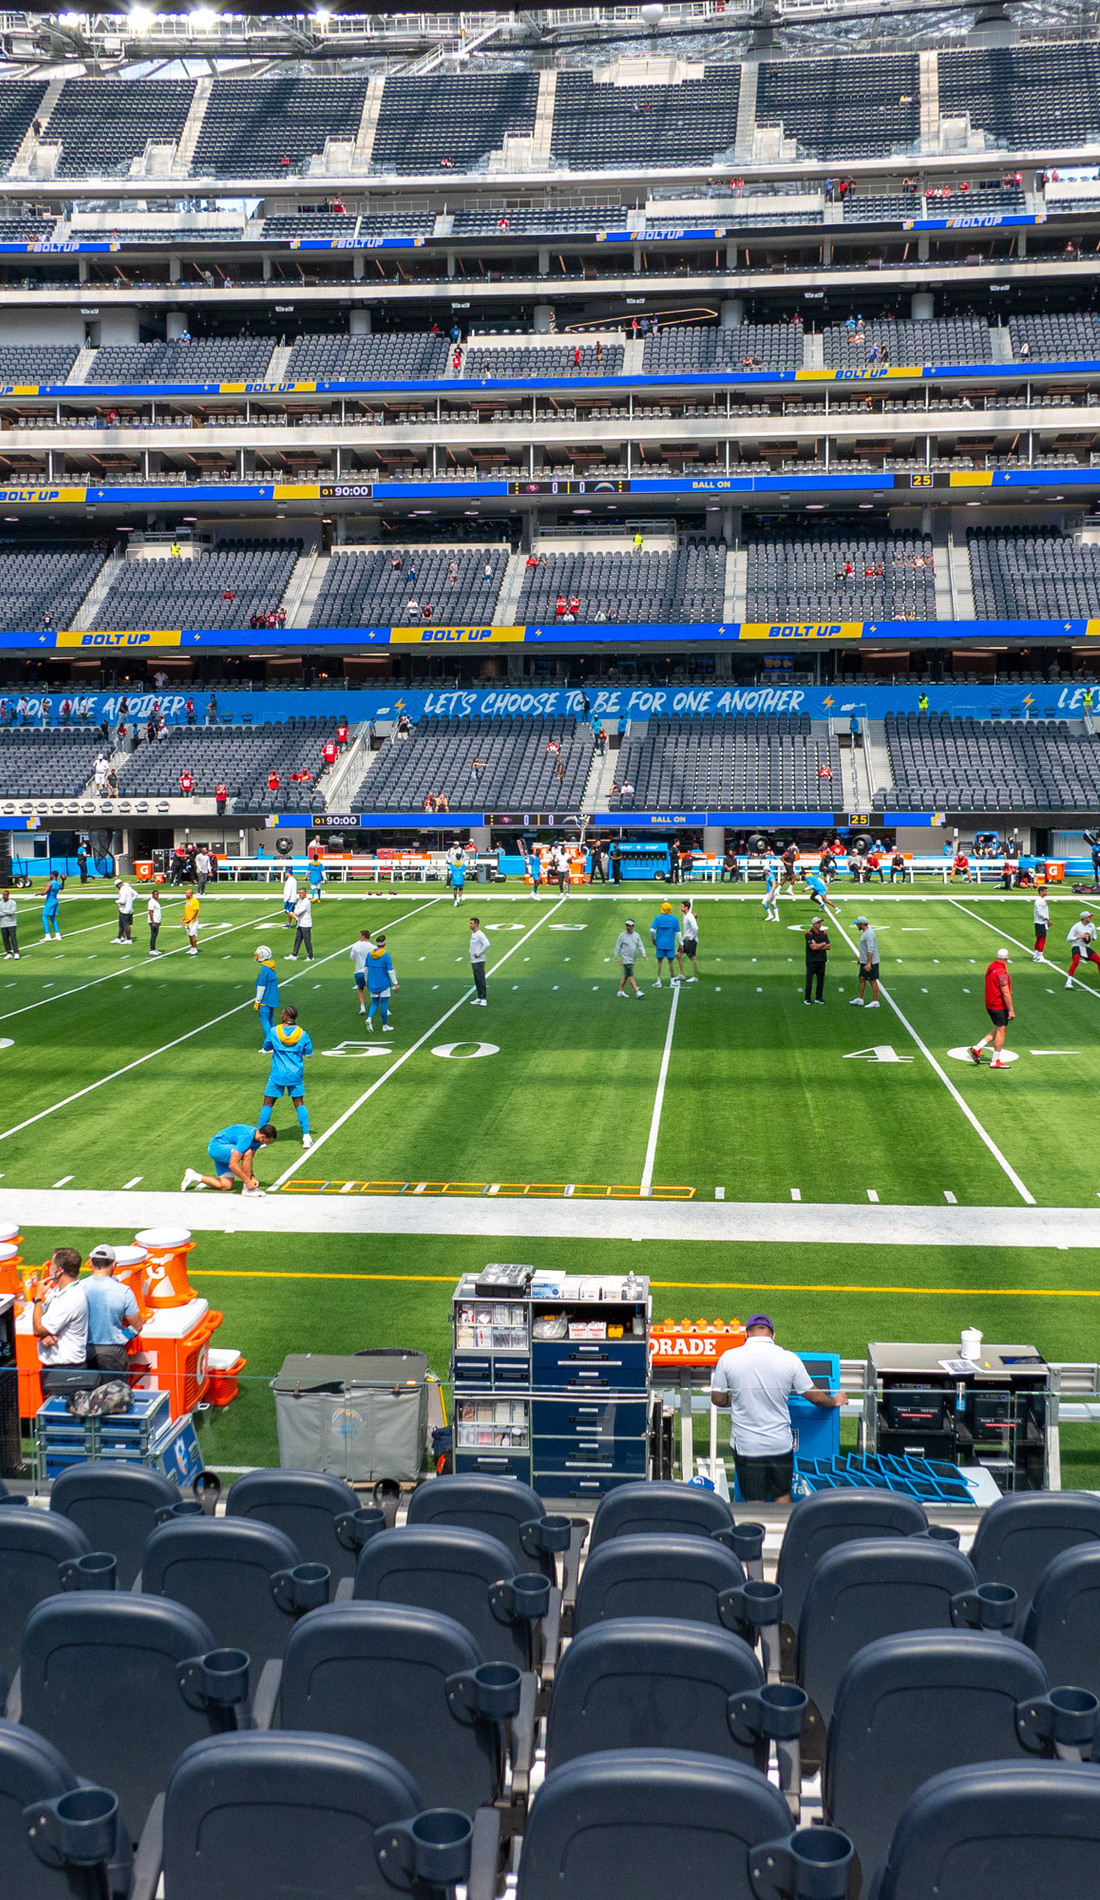 A Los Angeles Chargers live event